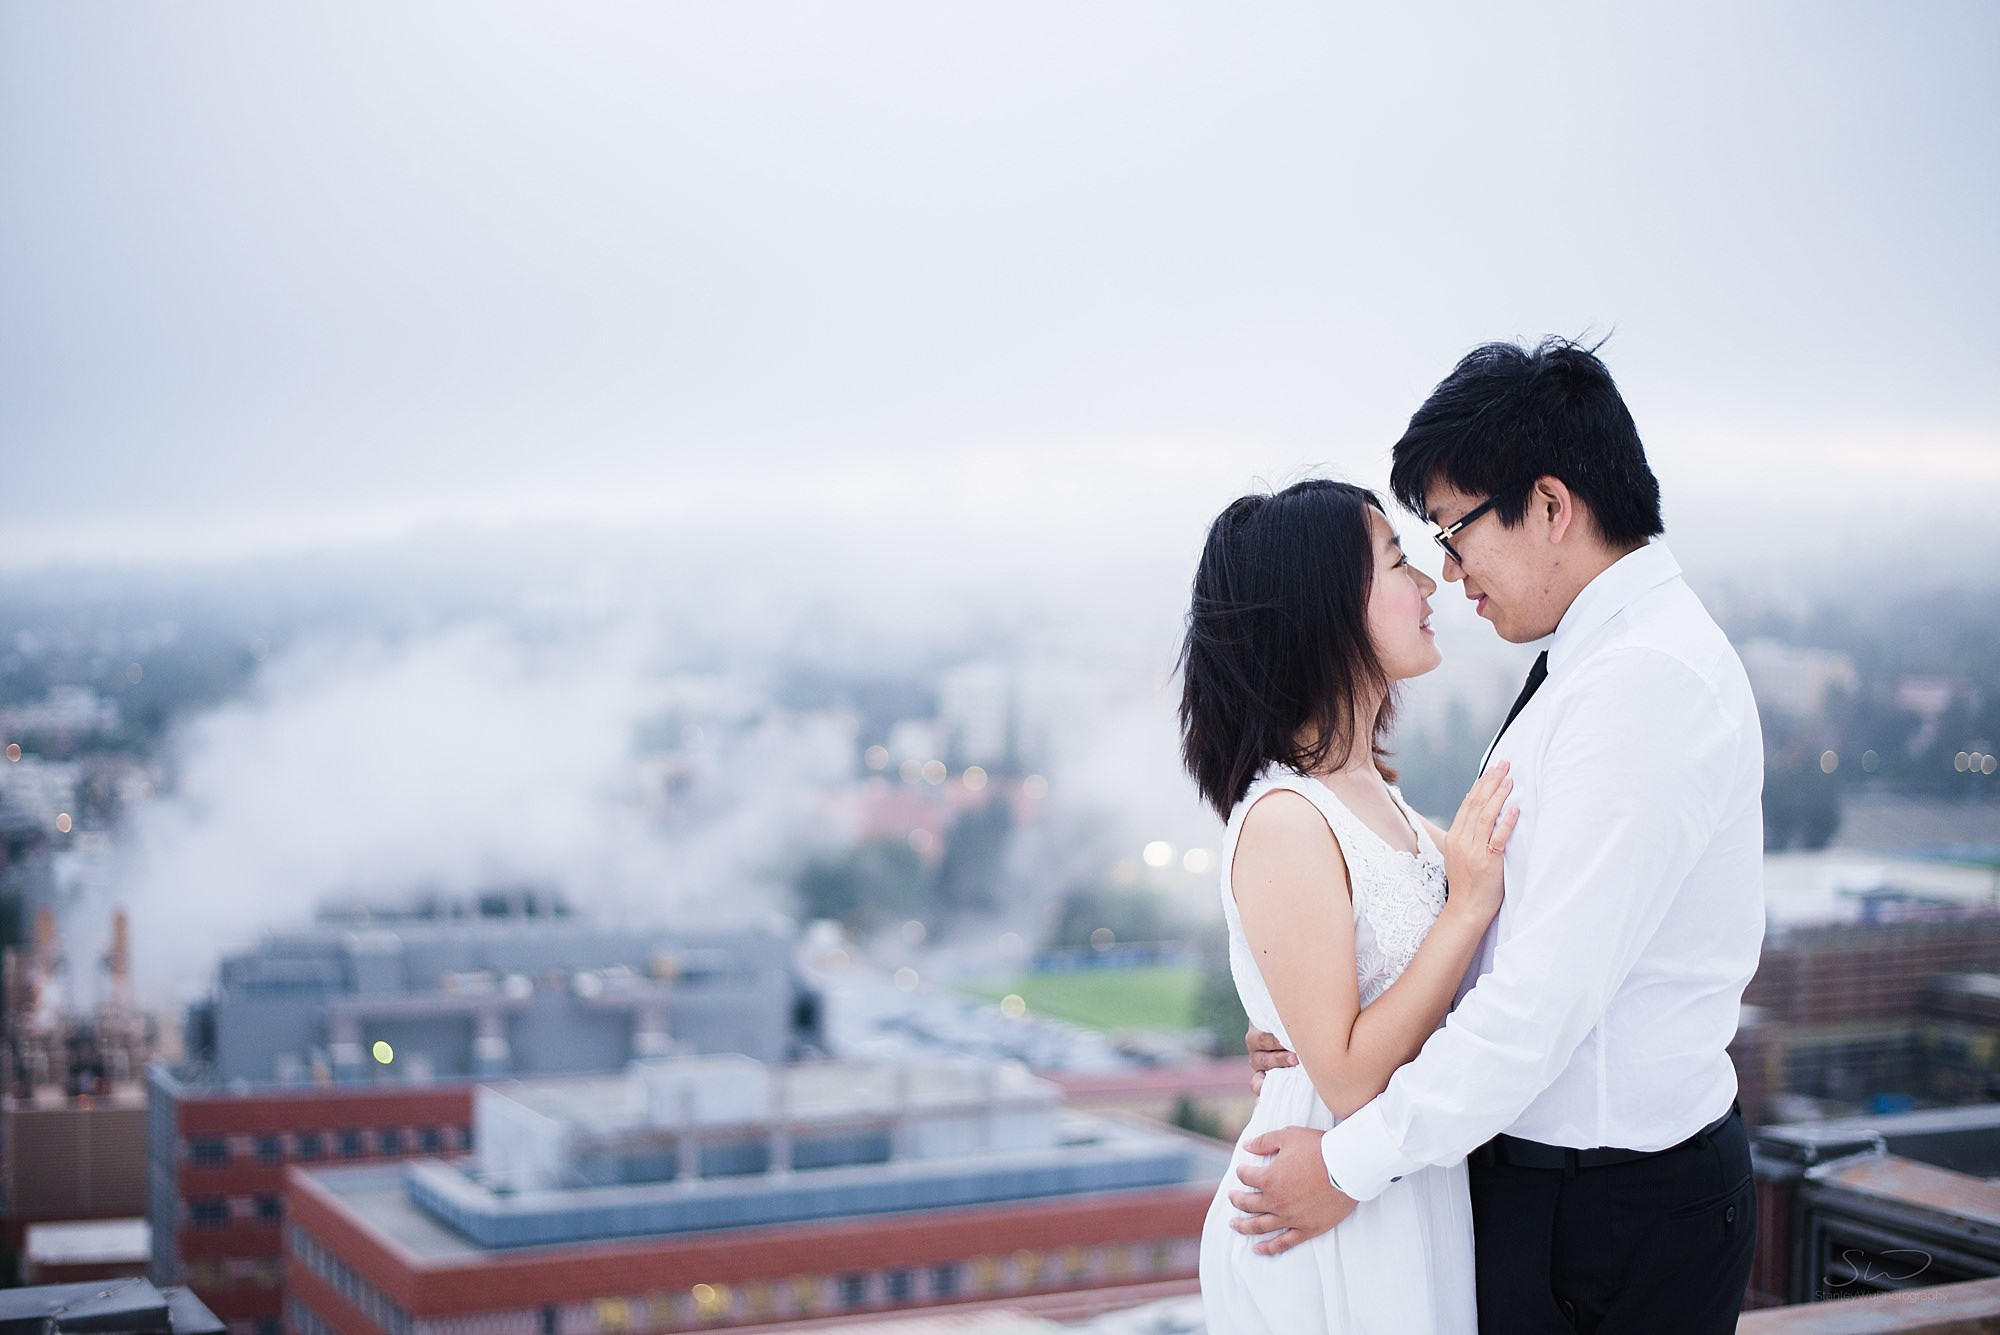 graduation senior portrait of a couple having a beautiful moment on a rooftop with some epic fog in the background at ucla in los angeles